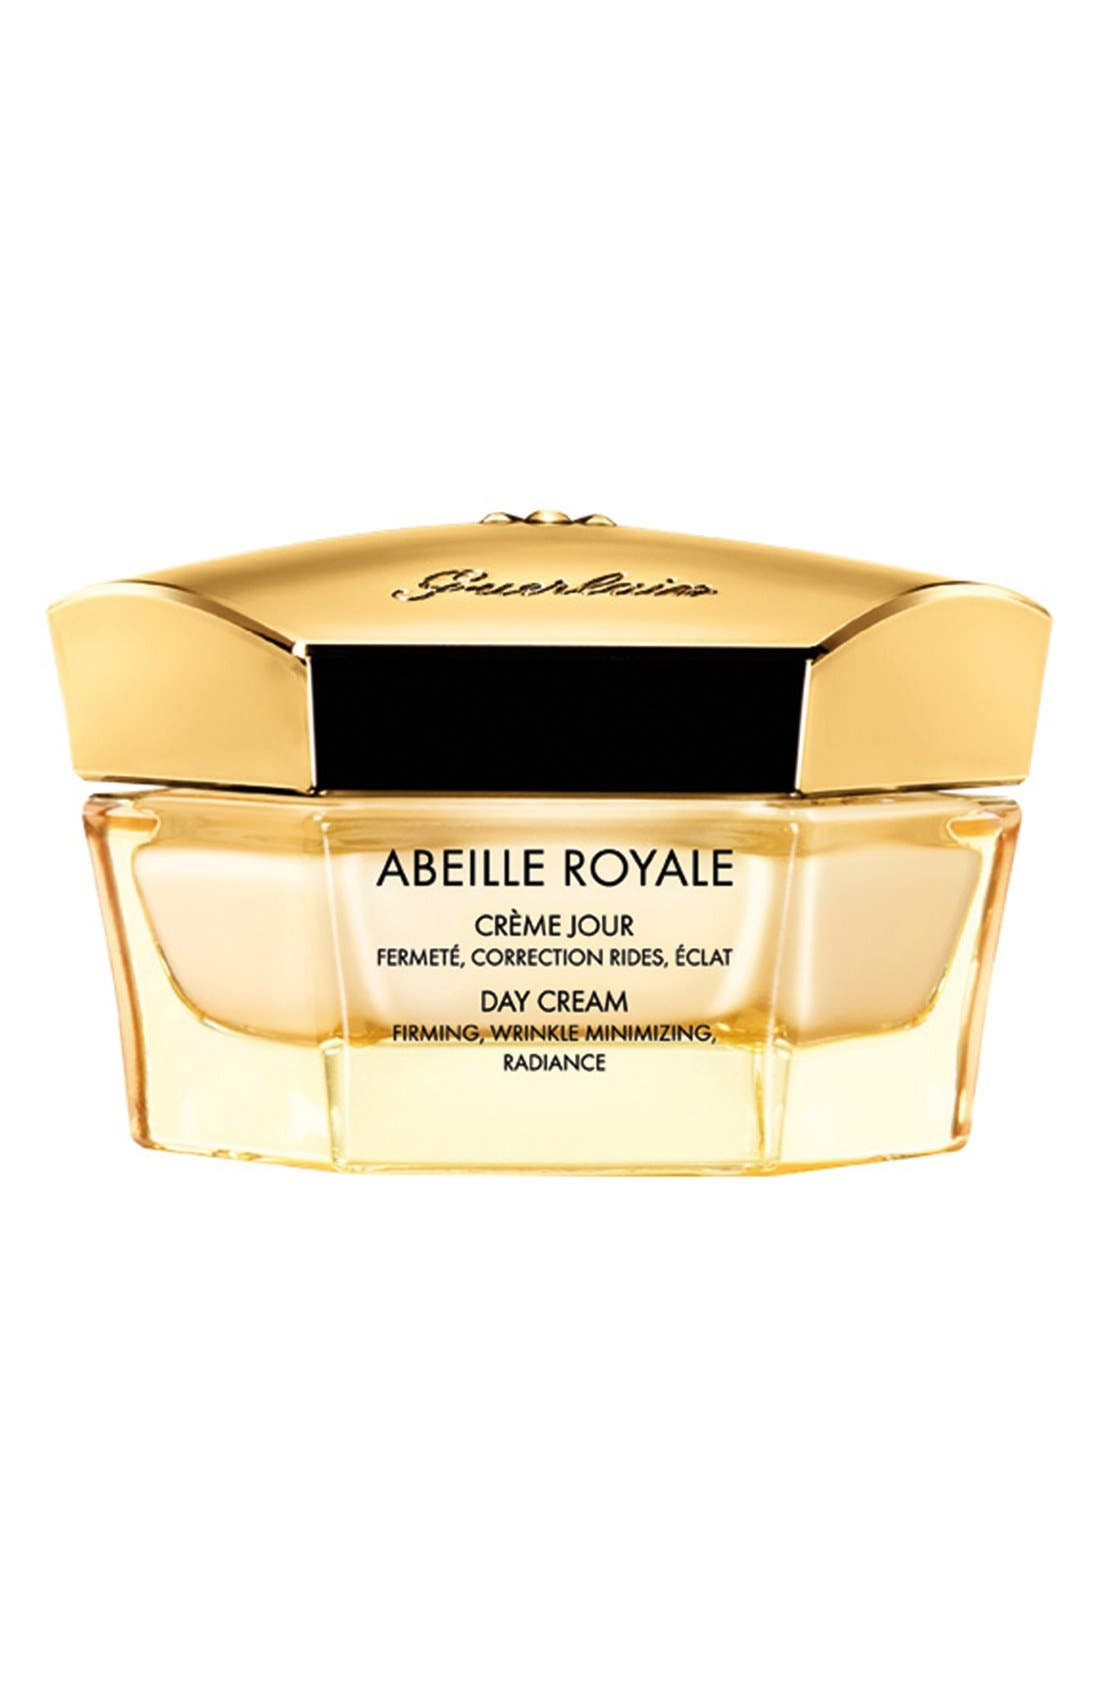 Abeille Royale Normal Day Cream,                             Main thumbnail 1, color,                             000